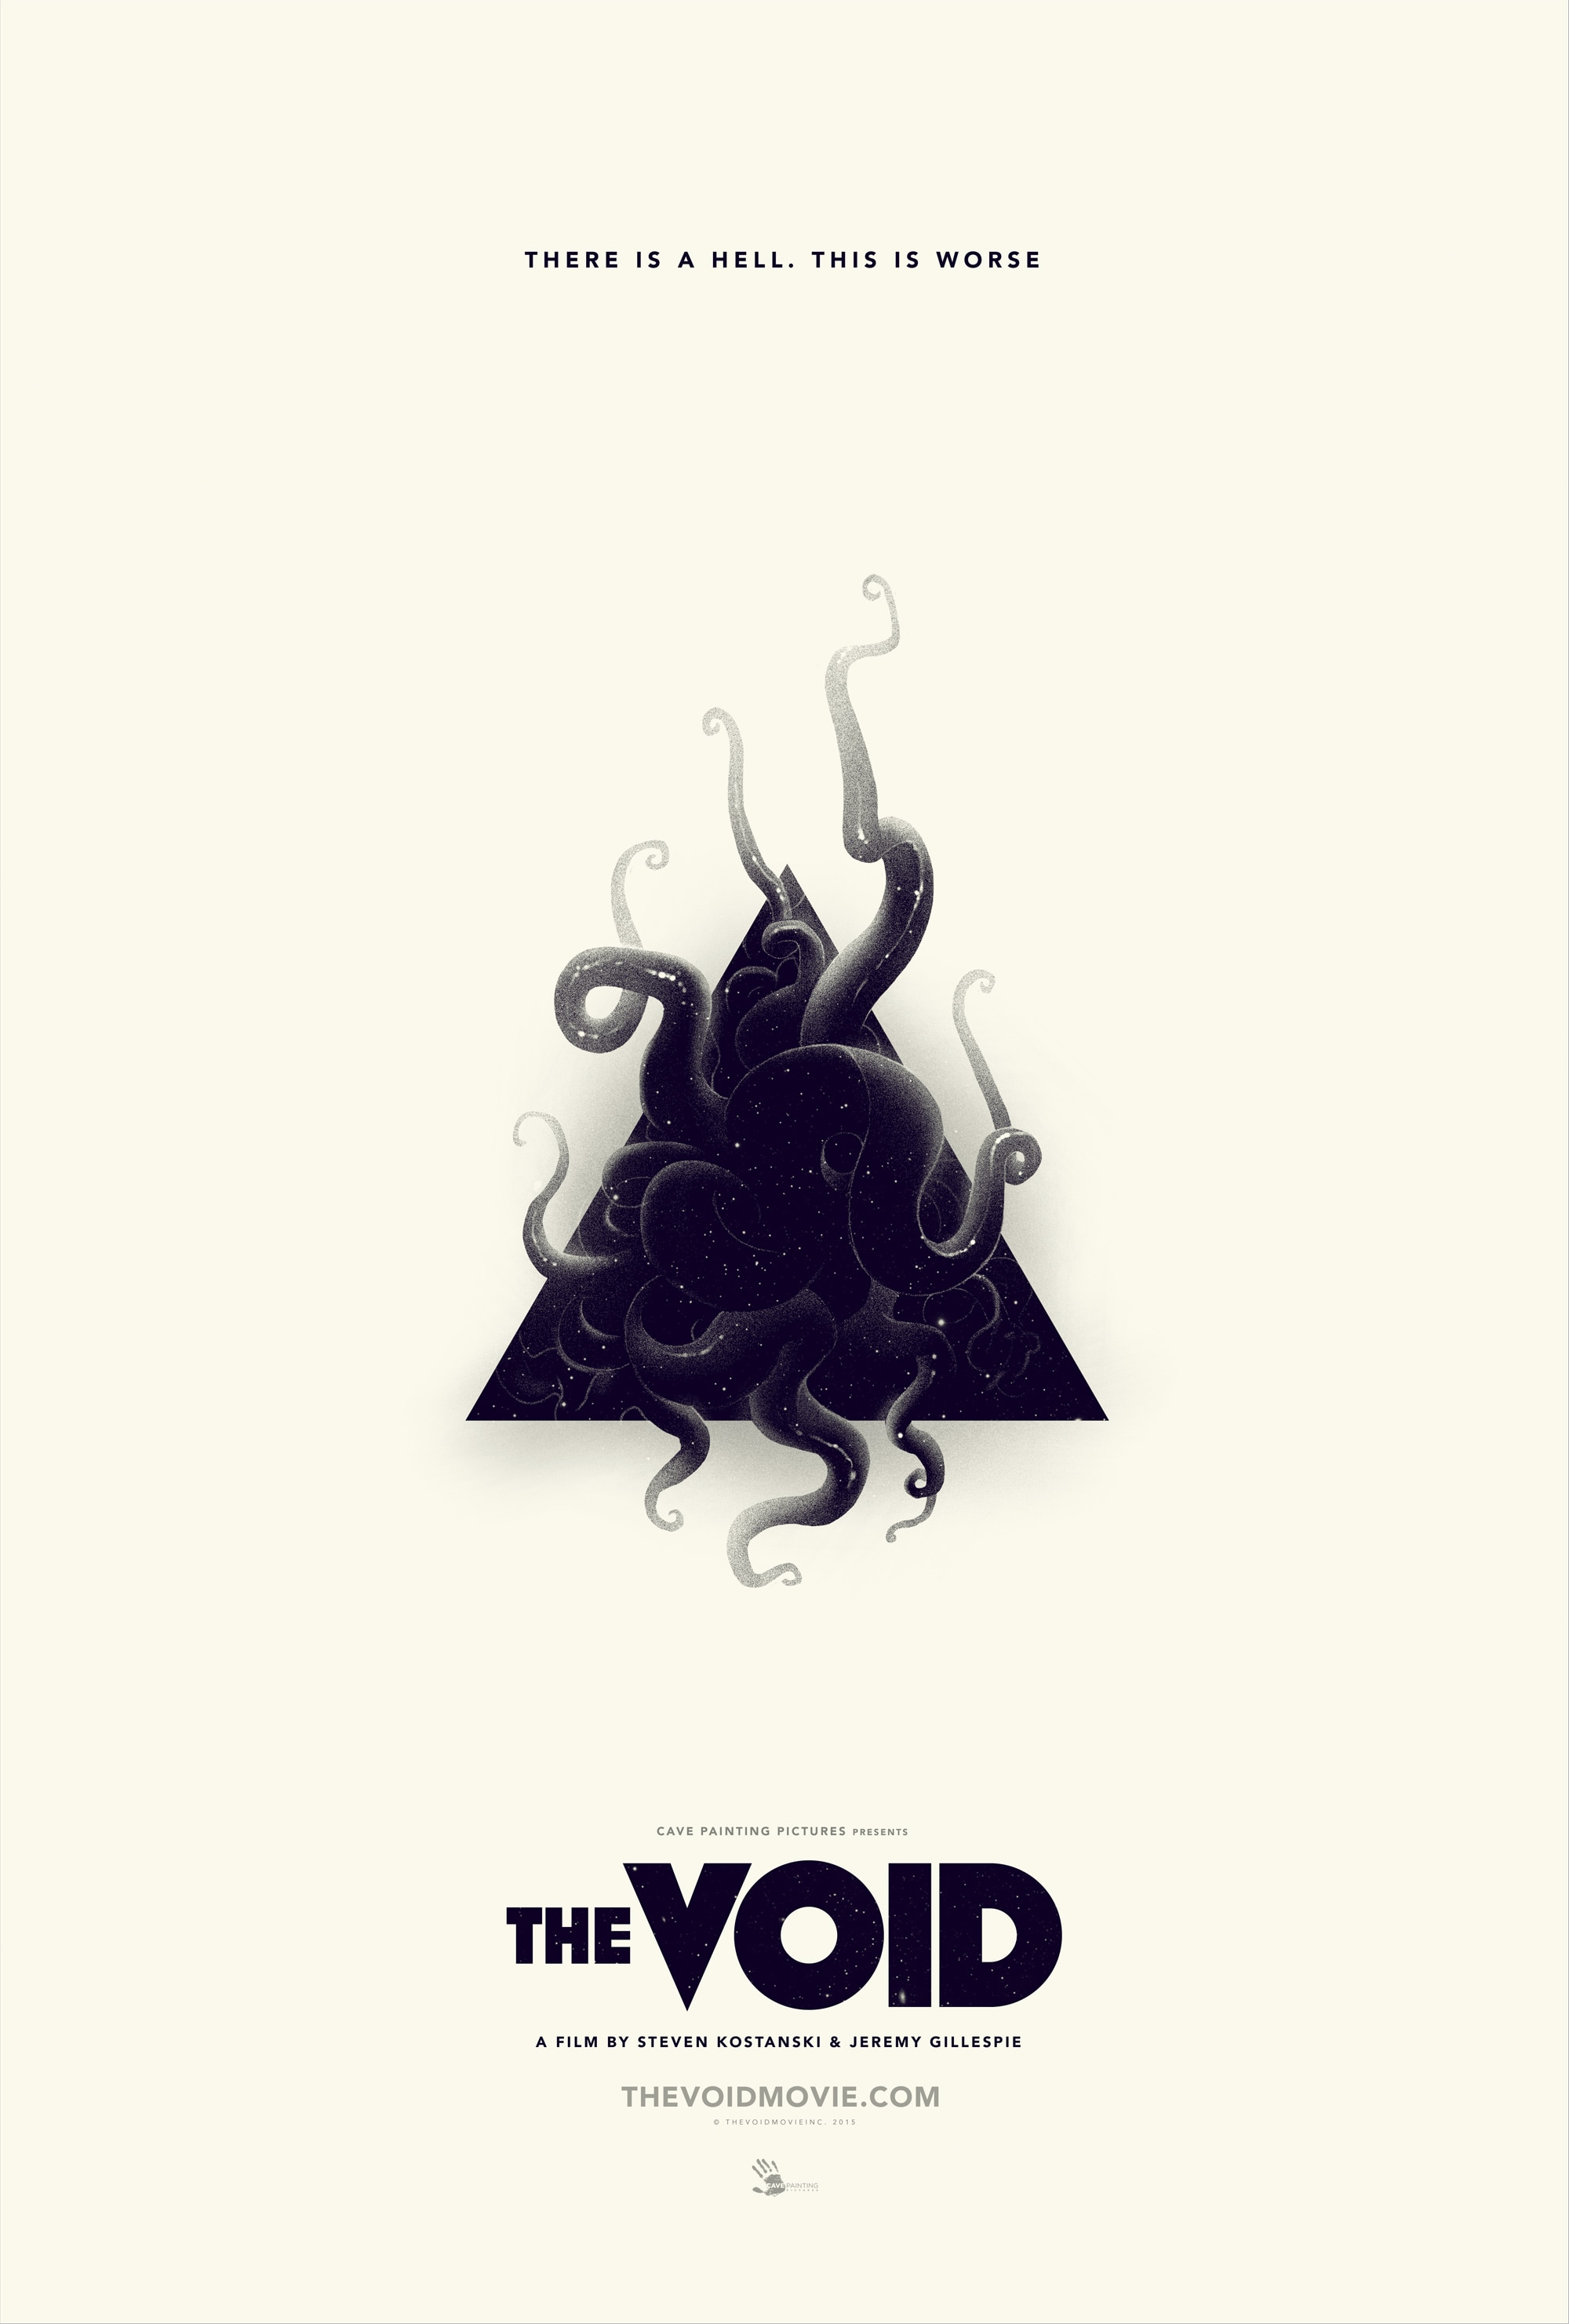 the void poster - The Void Home to a New Trailer